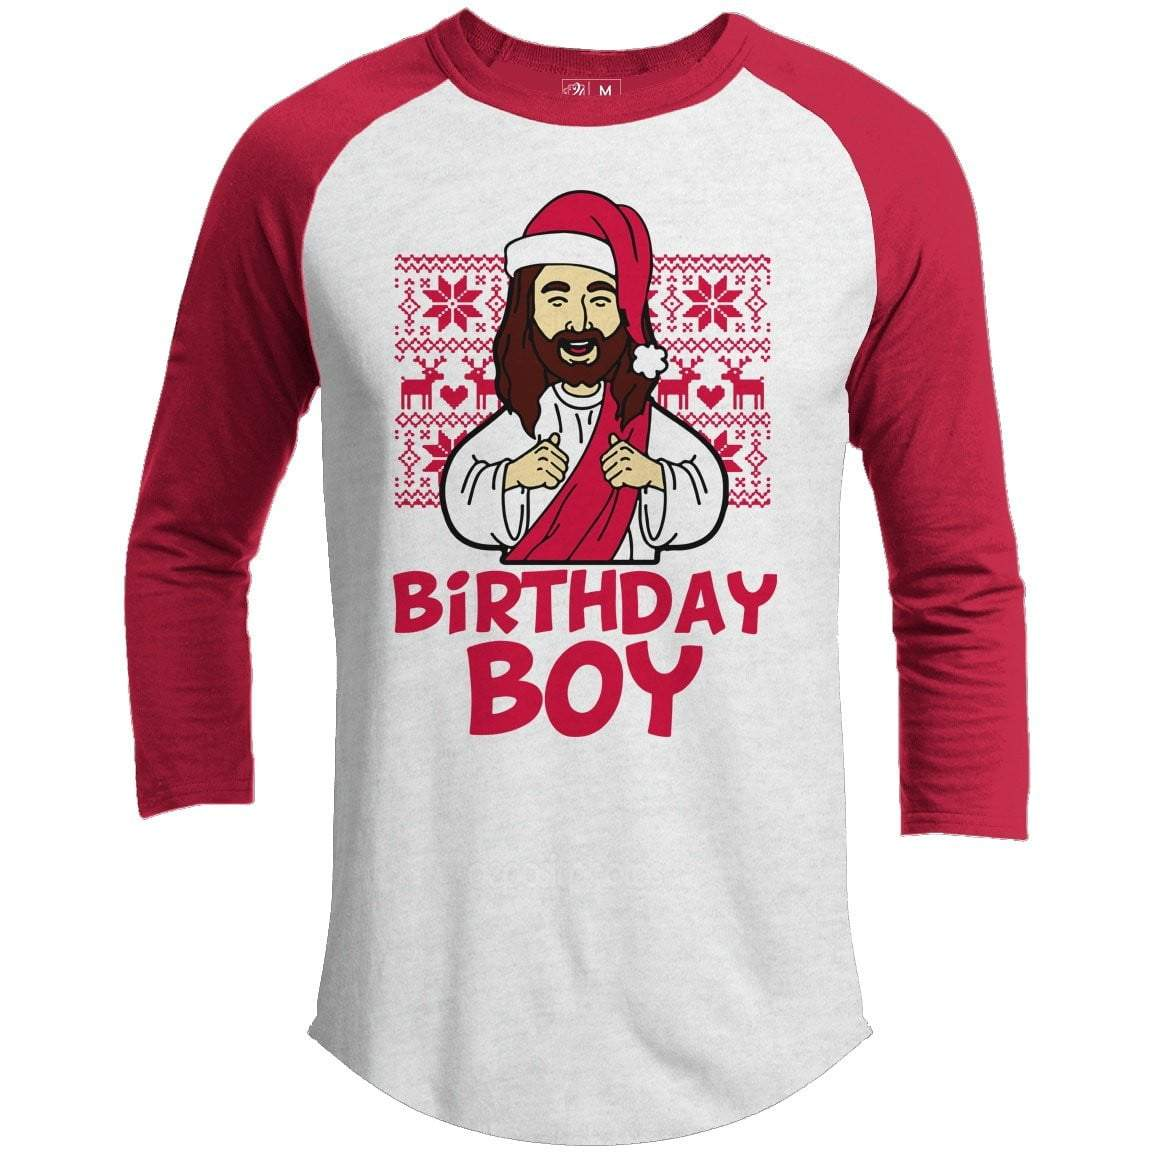 BIRTHDAY BOY Premium Youth Christmas Raglan